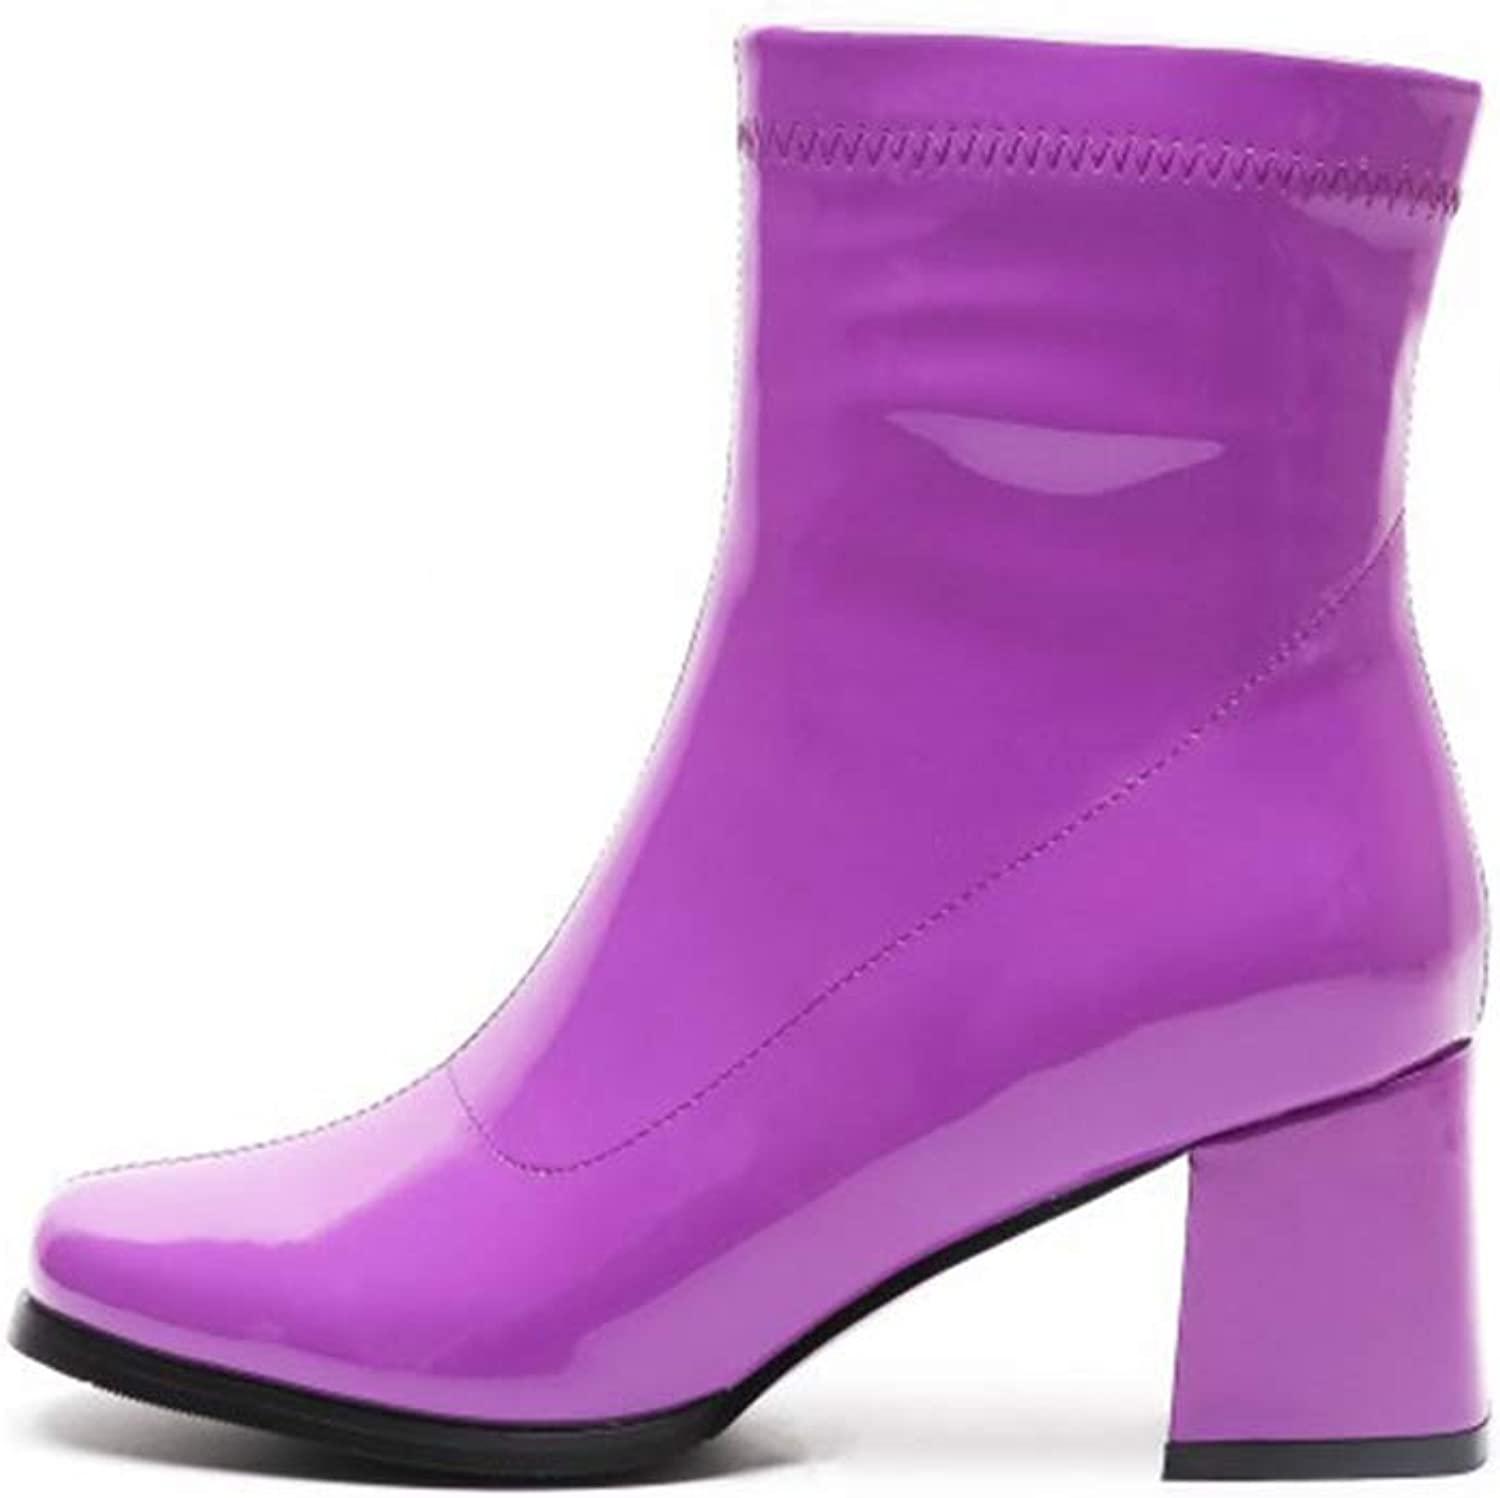 Women's Booties, Fall Winter Small Square Head Side Zipper High Thick Heel Fashion Boots Ladies Non-Slip Ankle Boots Black bluee Purple (color   C, Size   39)